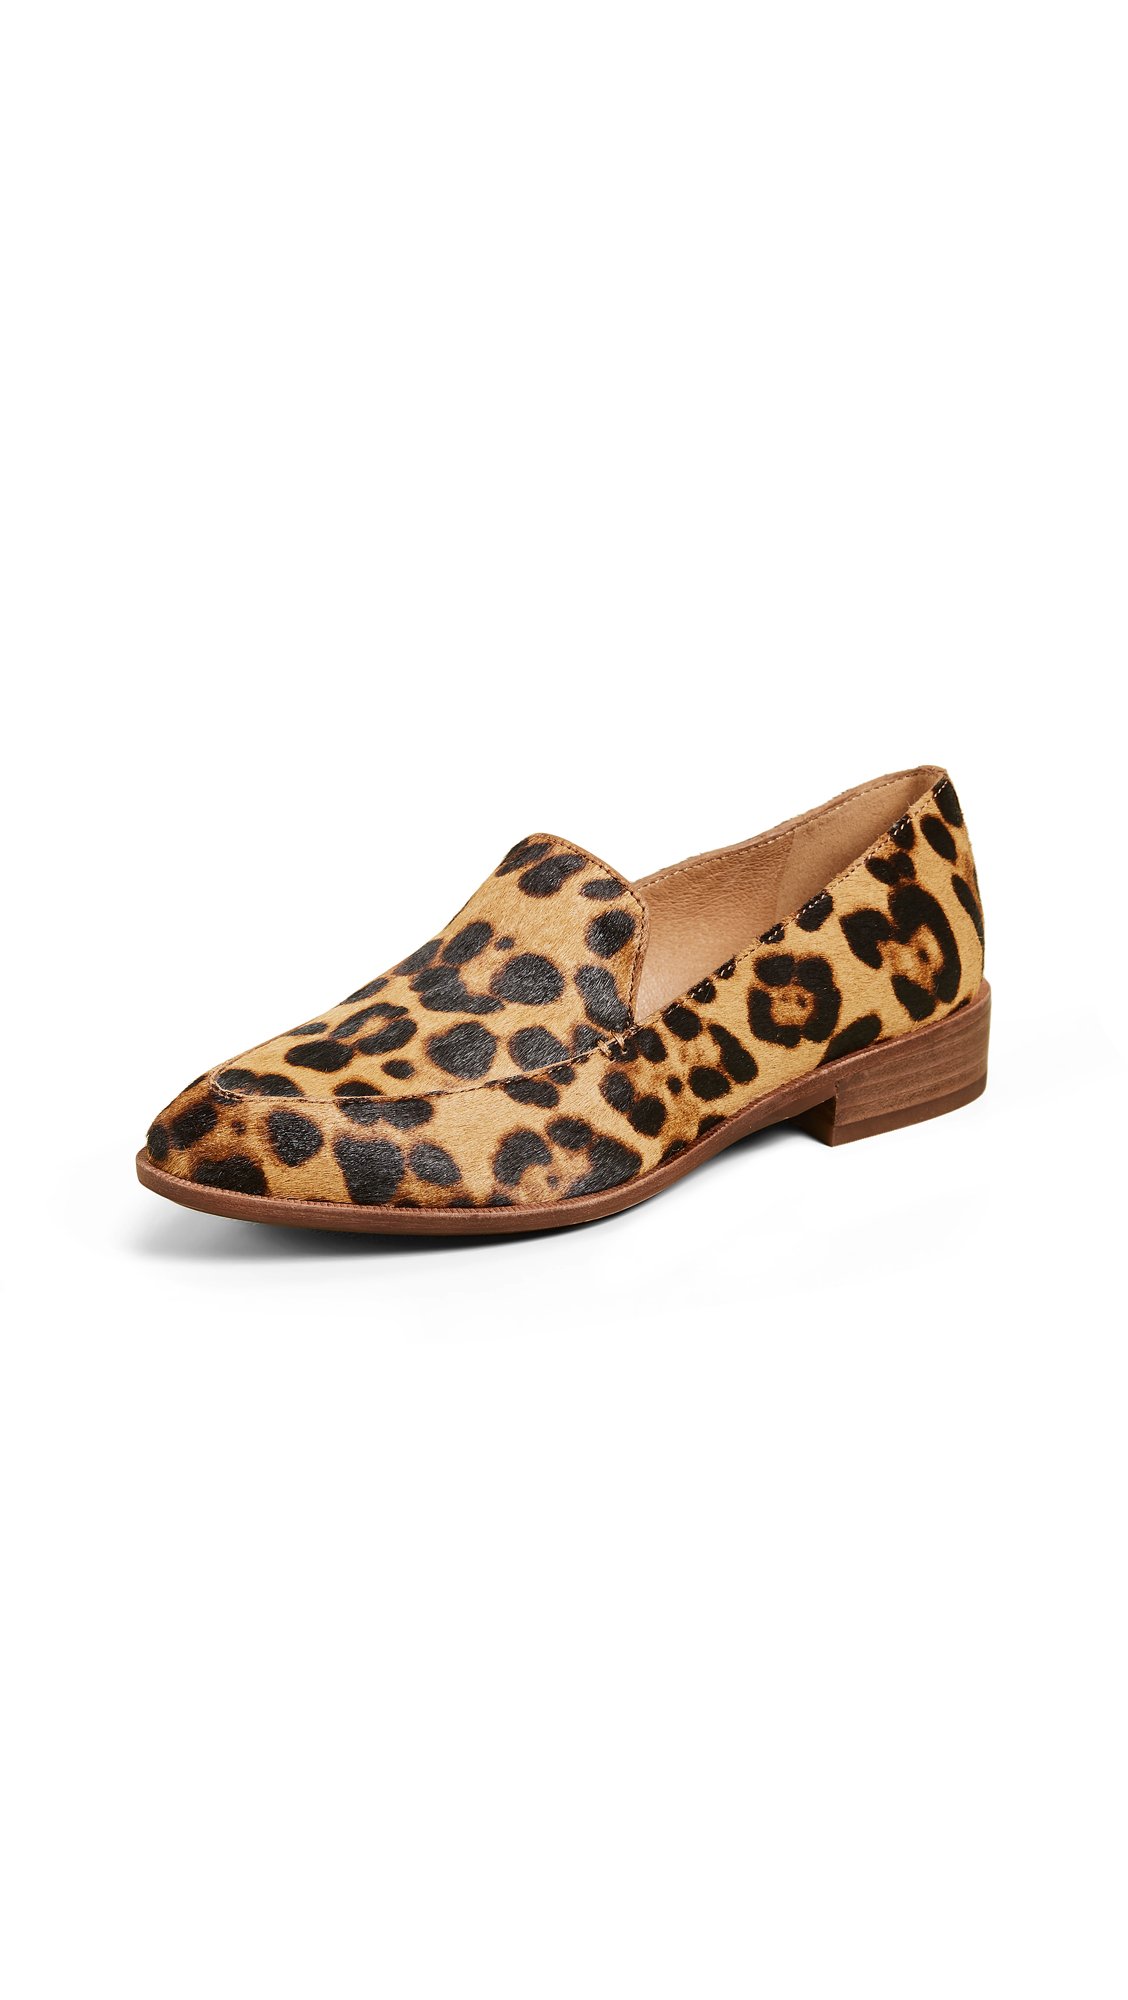 Madewell Frances Leopard Loafers